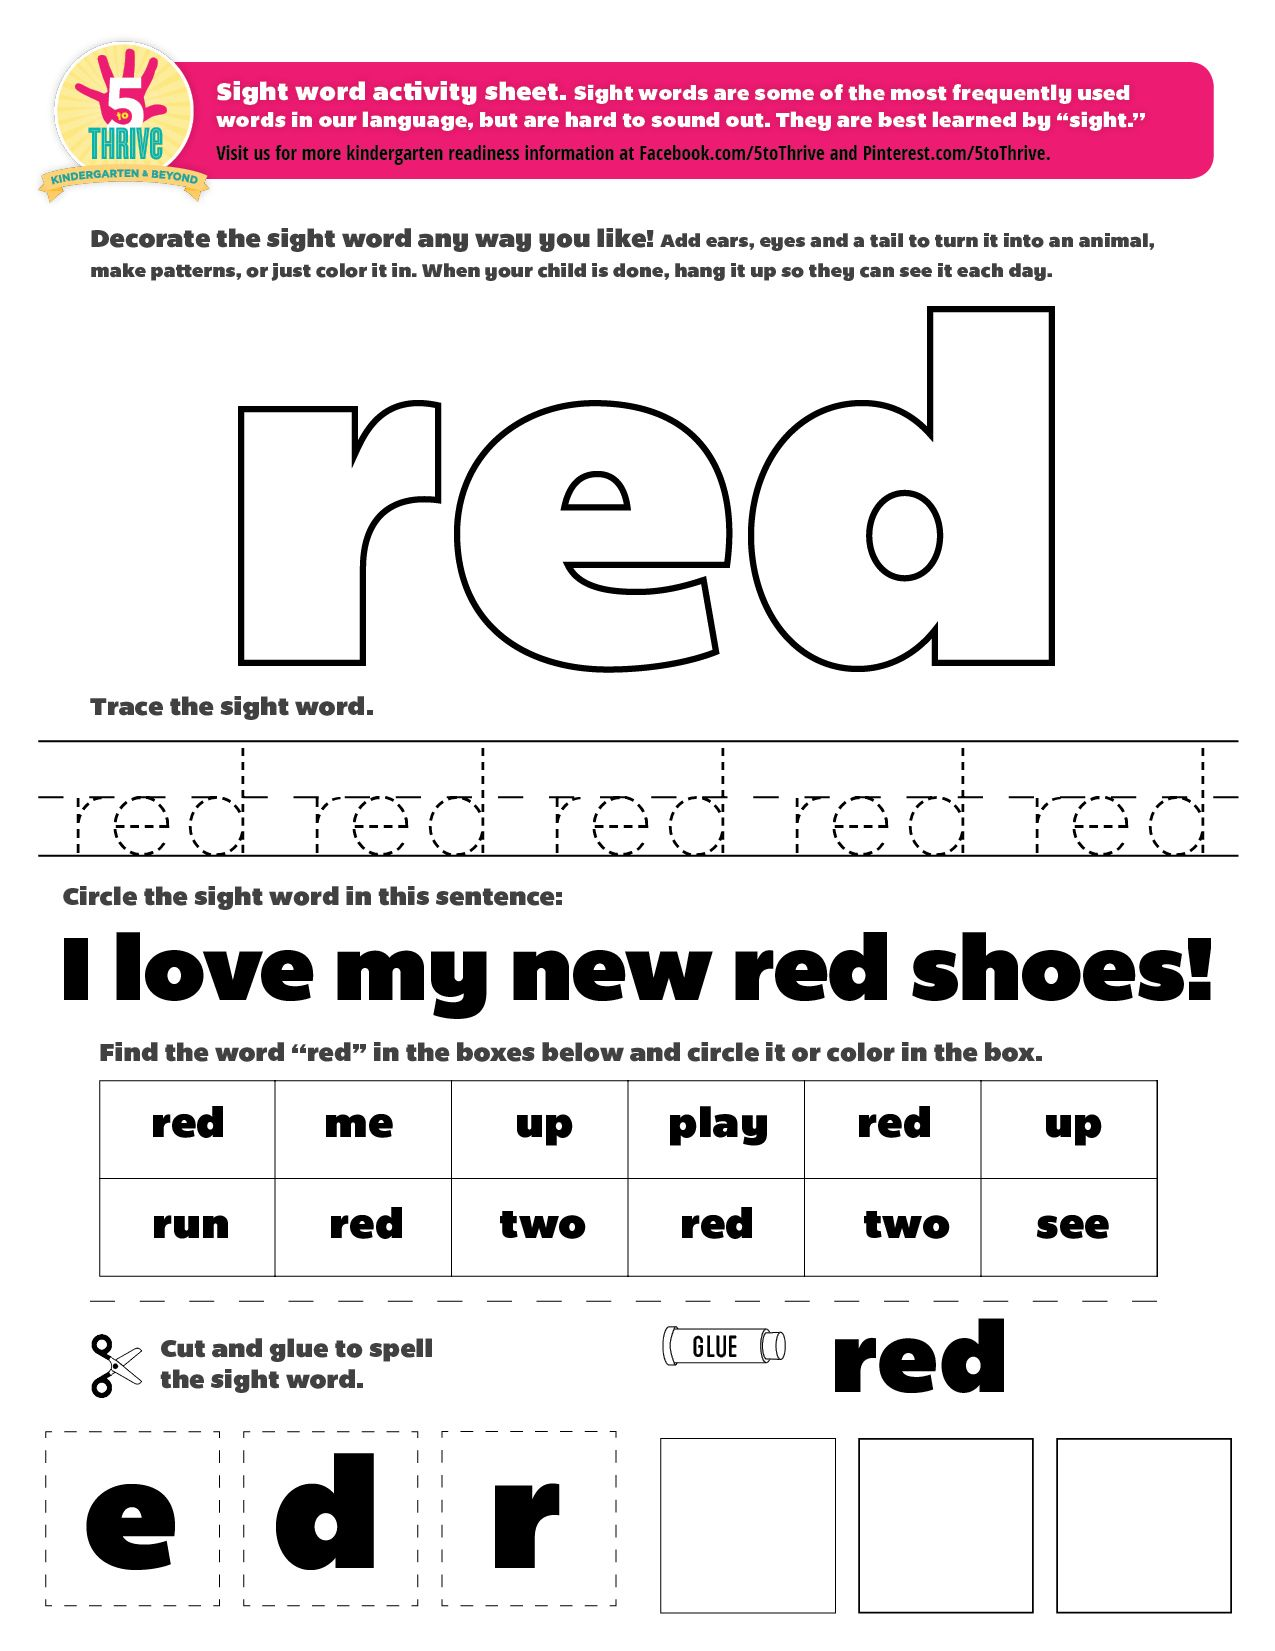 The Sight Word This Week Is Red Sight Words Are Some Of The Most Frequently Kindergarten Worksheets Sight Words Sight Word Worksheets Preschool Sight Words [ 1651 x 1275 Pixel ]